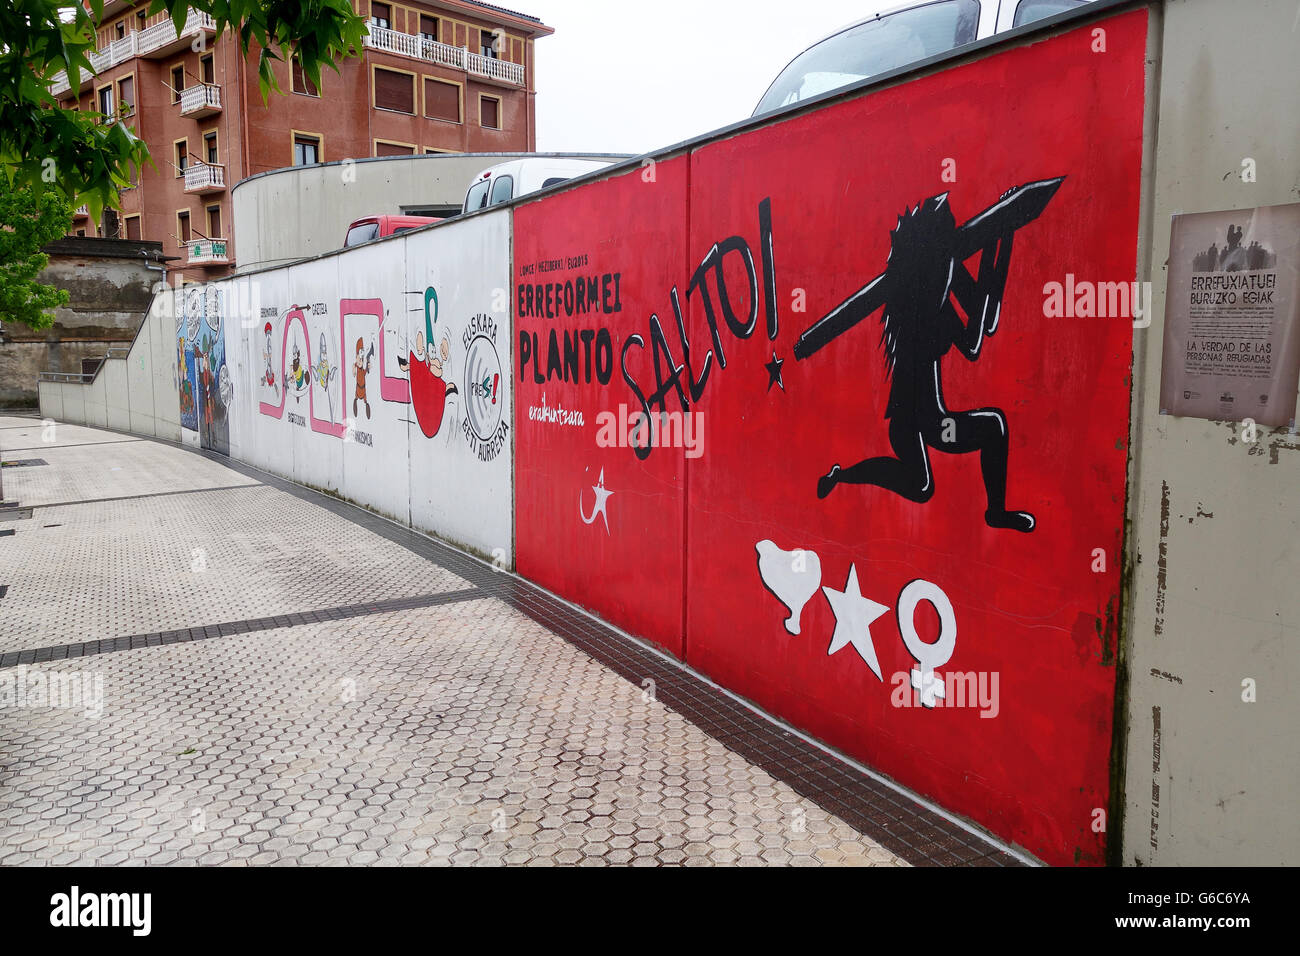 Basque graffiti in Pasaia or Pasajes located in the province of Gipuzkoa in the Basque Region of Spain - Stock Image